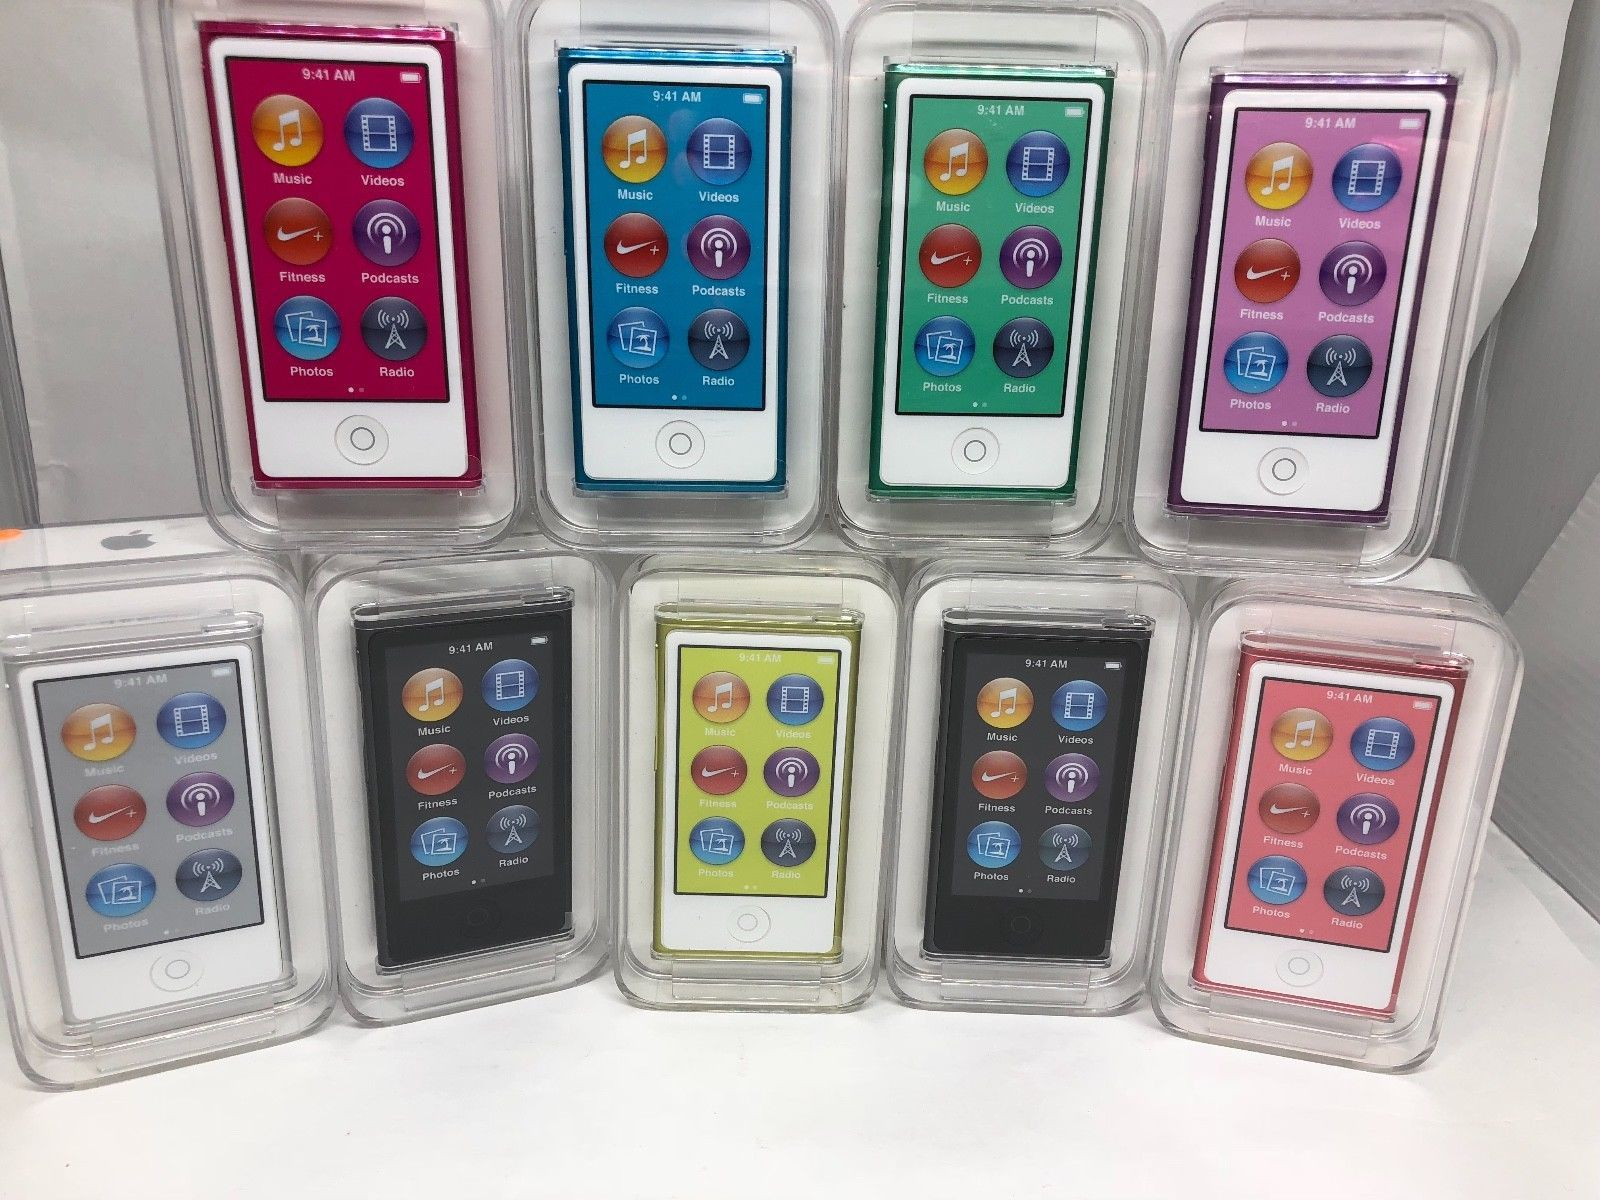 how to download free music to ipod nano 7th generation